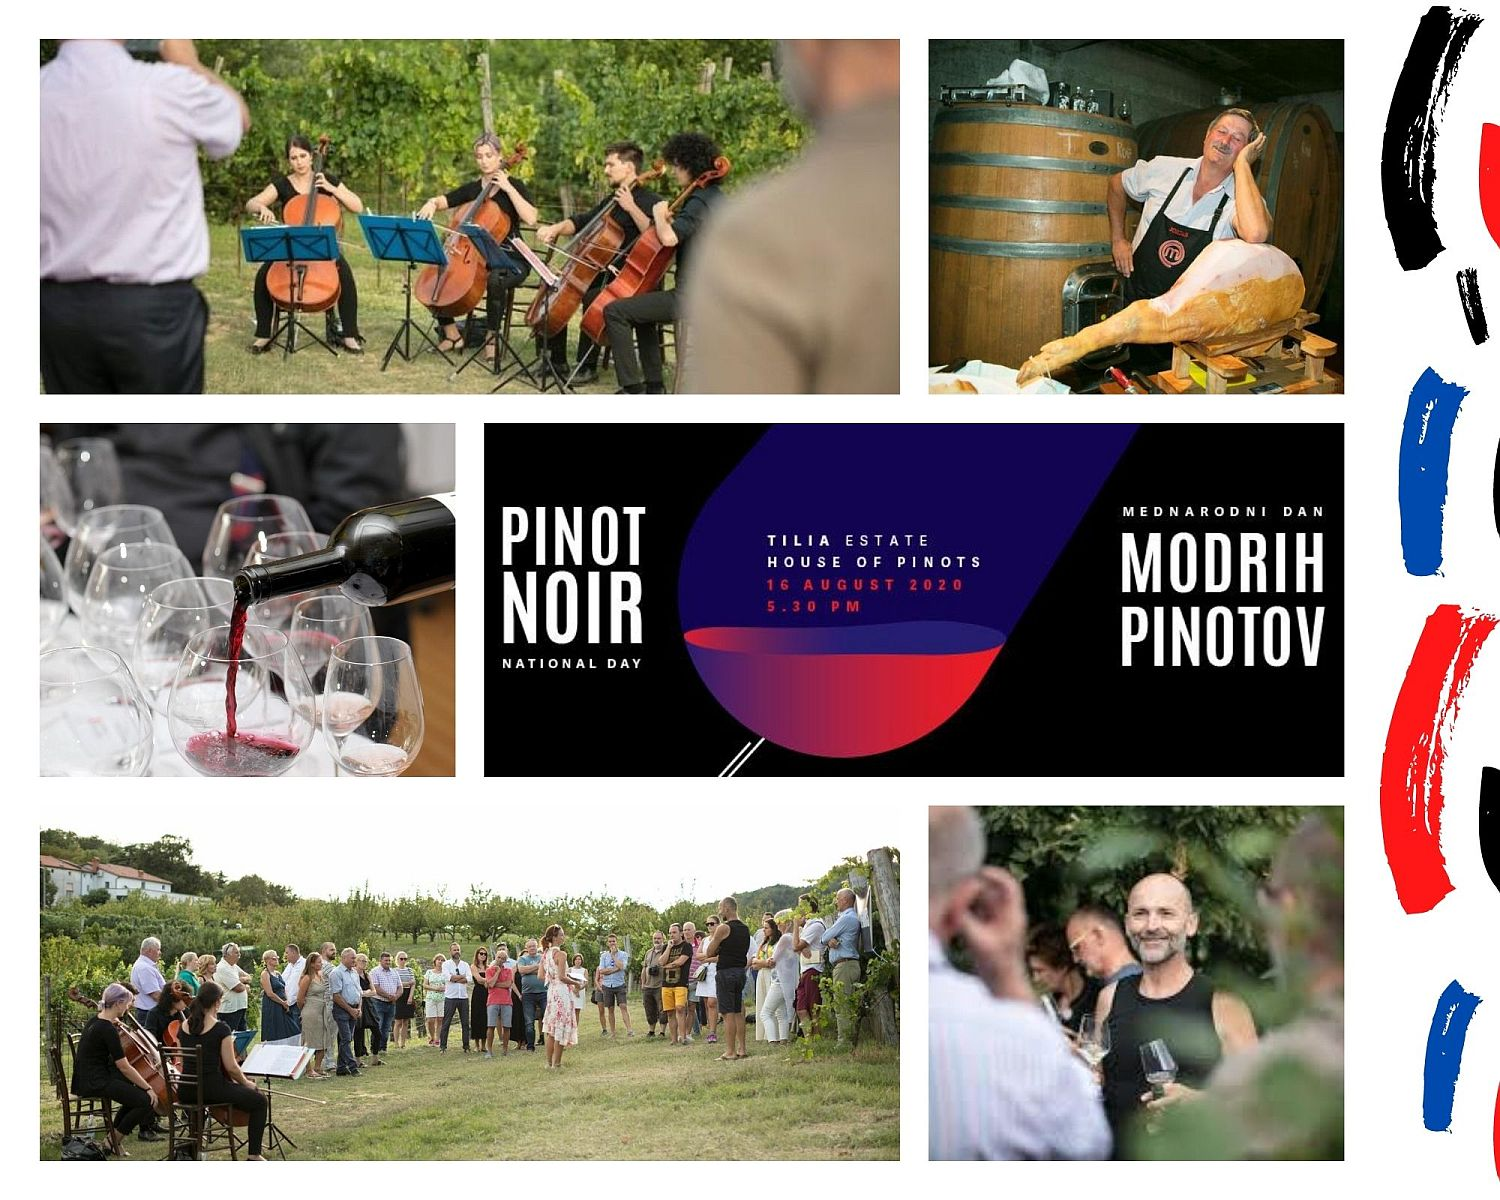 Poster for International Pinot Noir Day at Tilia Estate House of Pinots